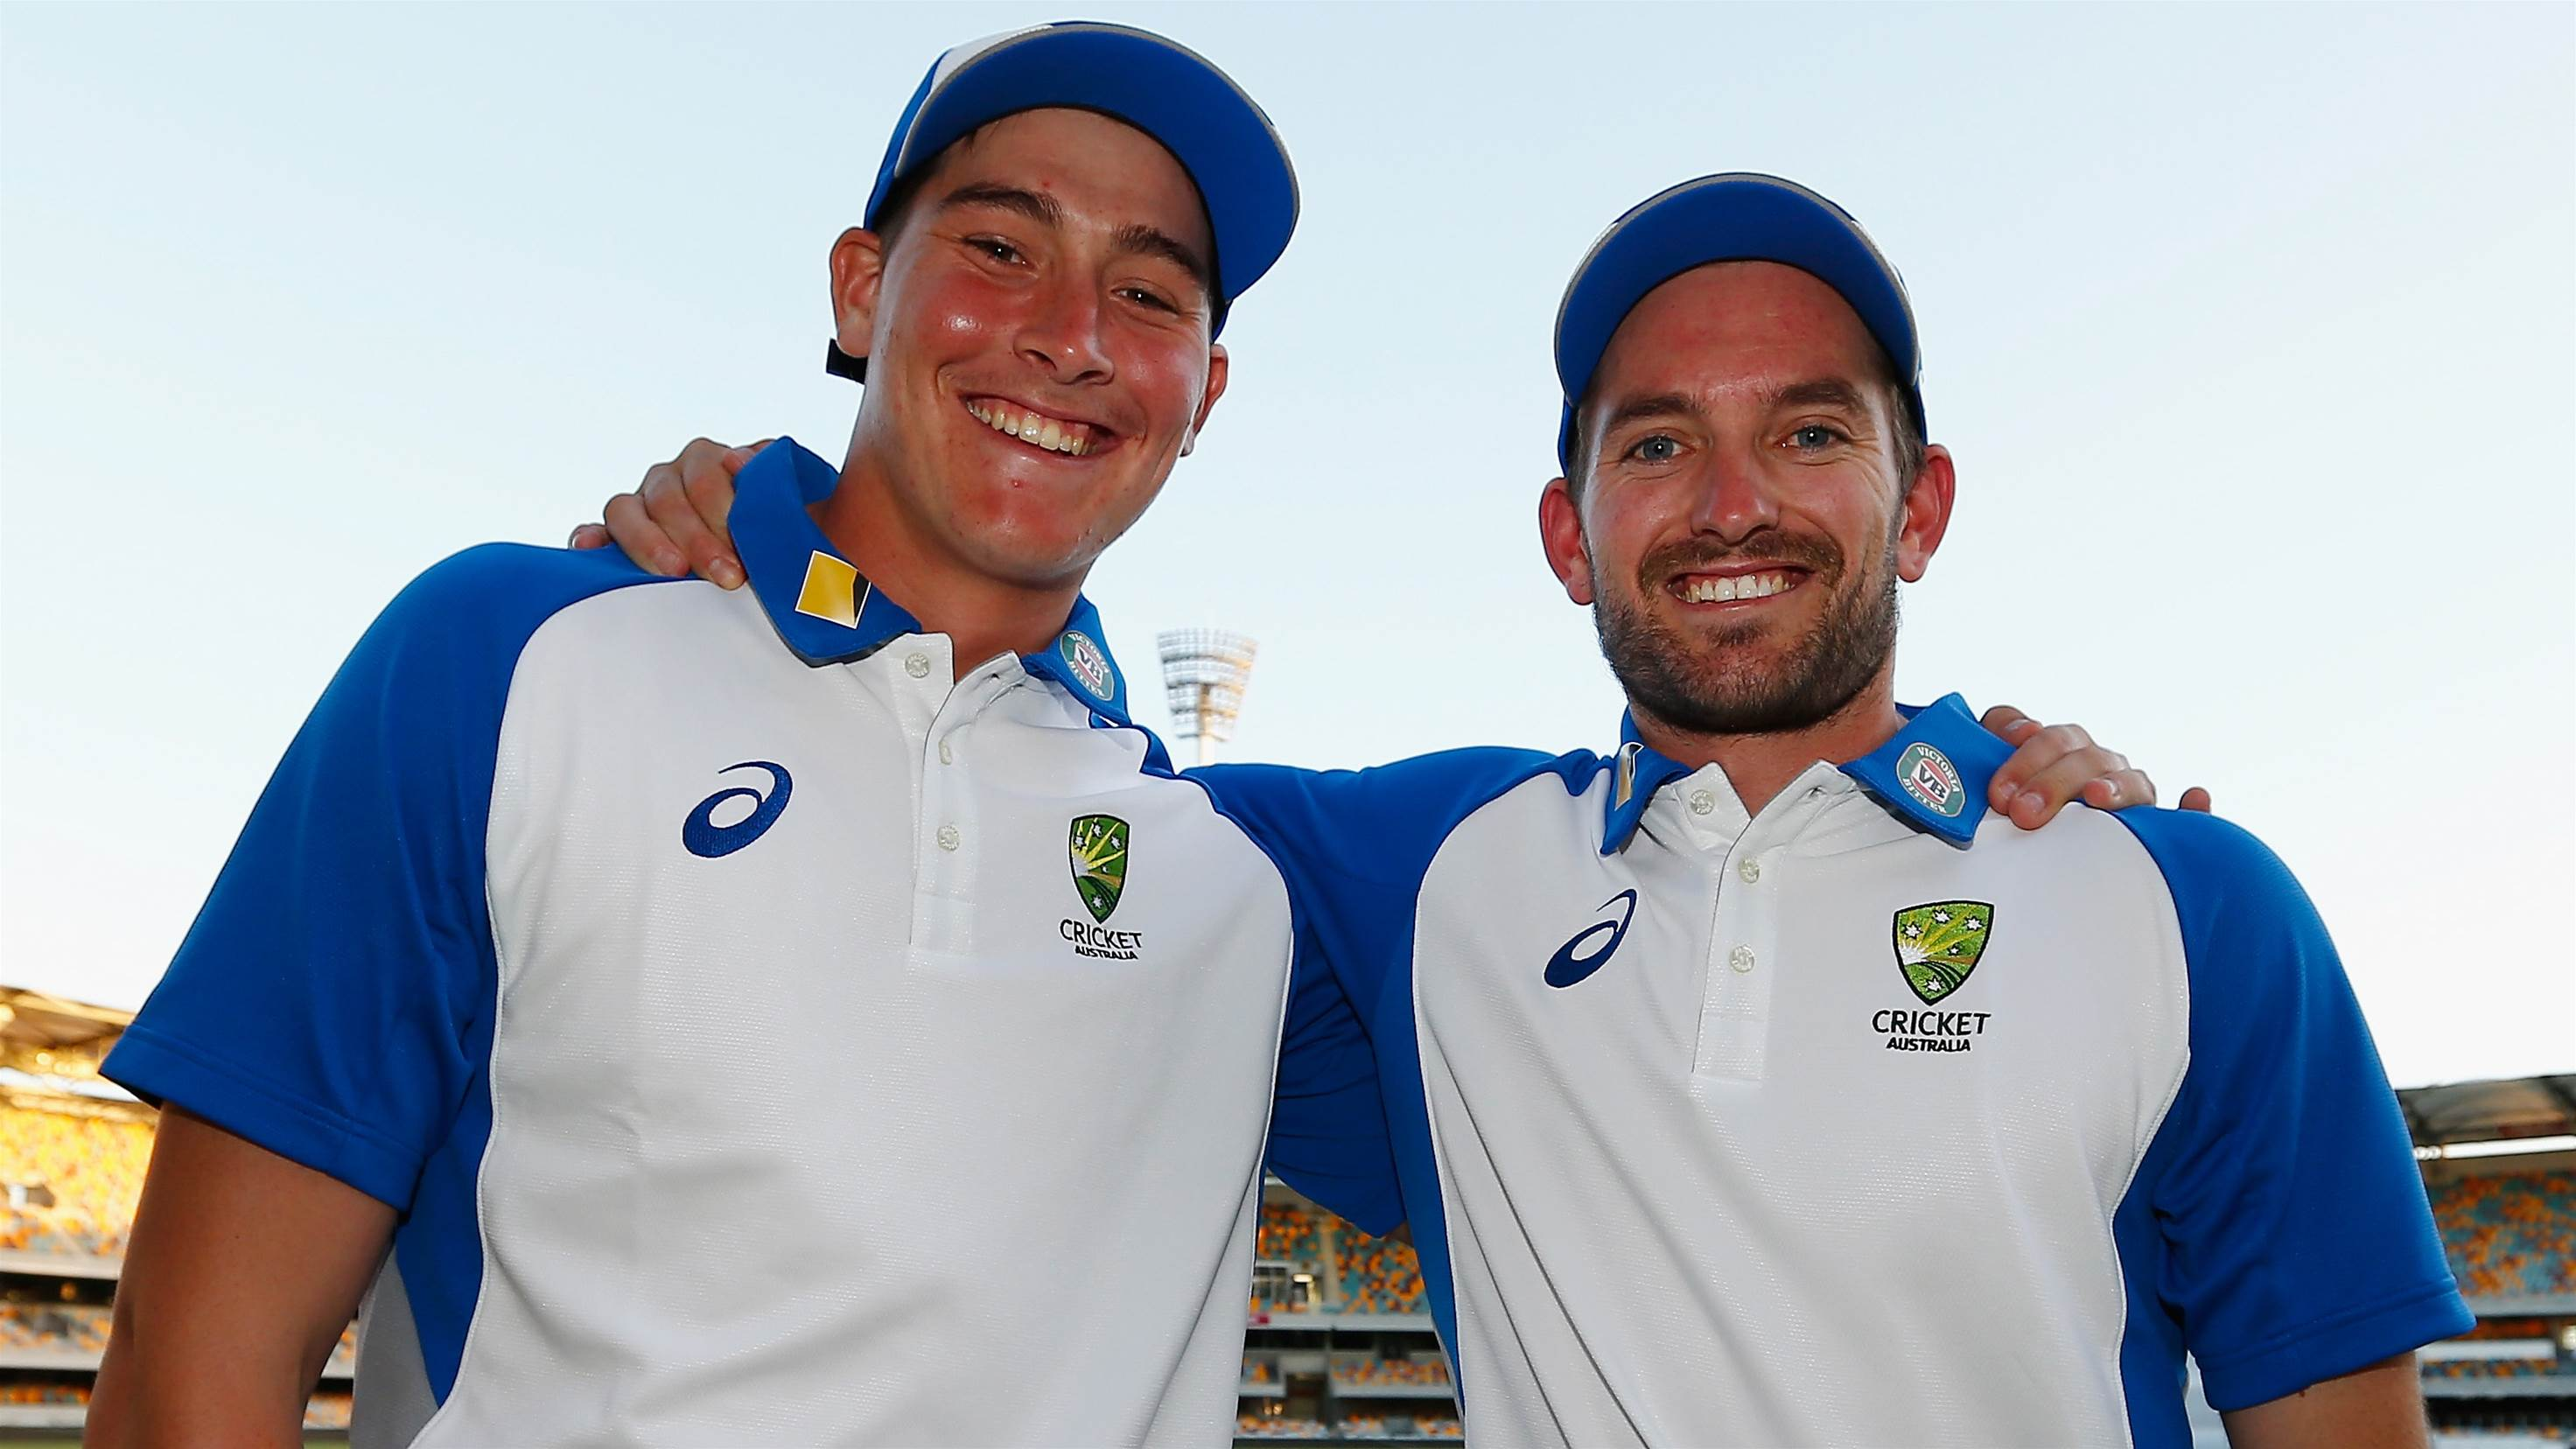 Adelaide Test: The dawning of a new era